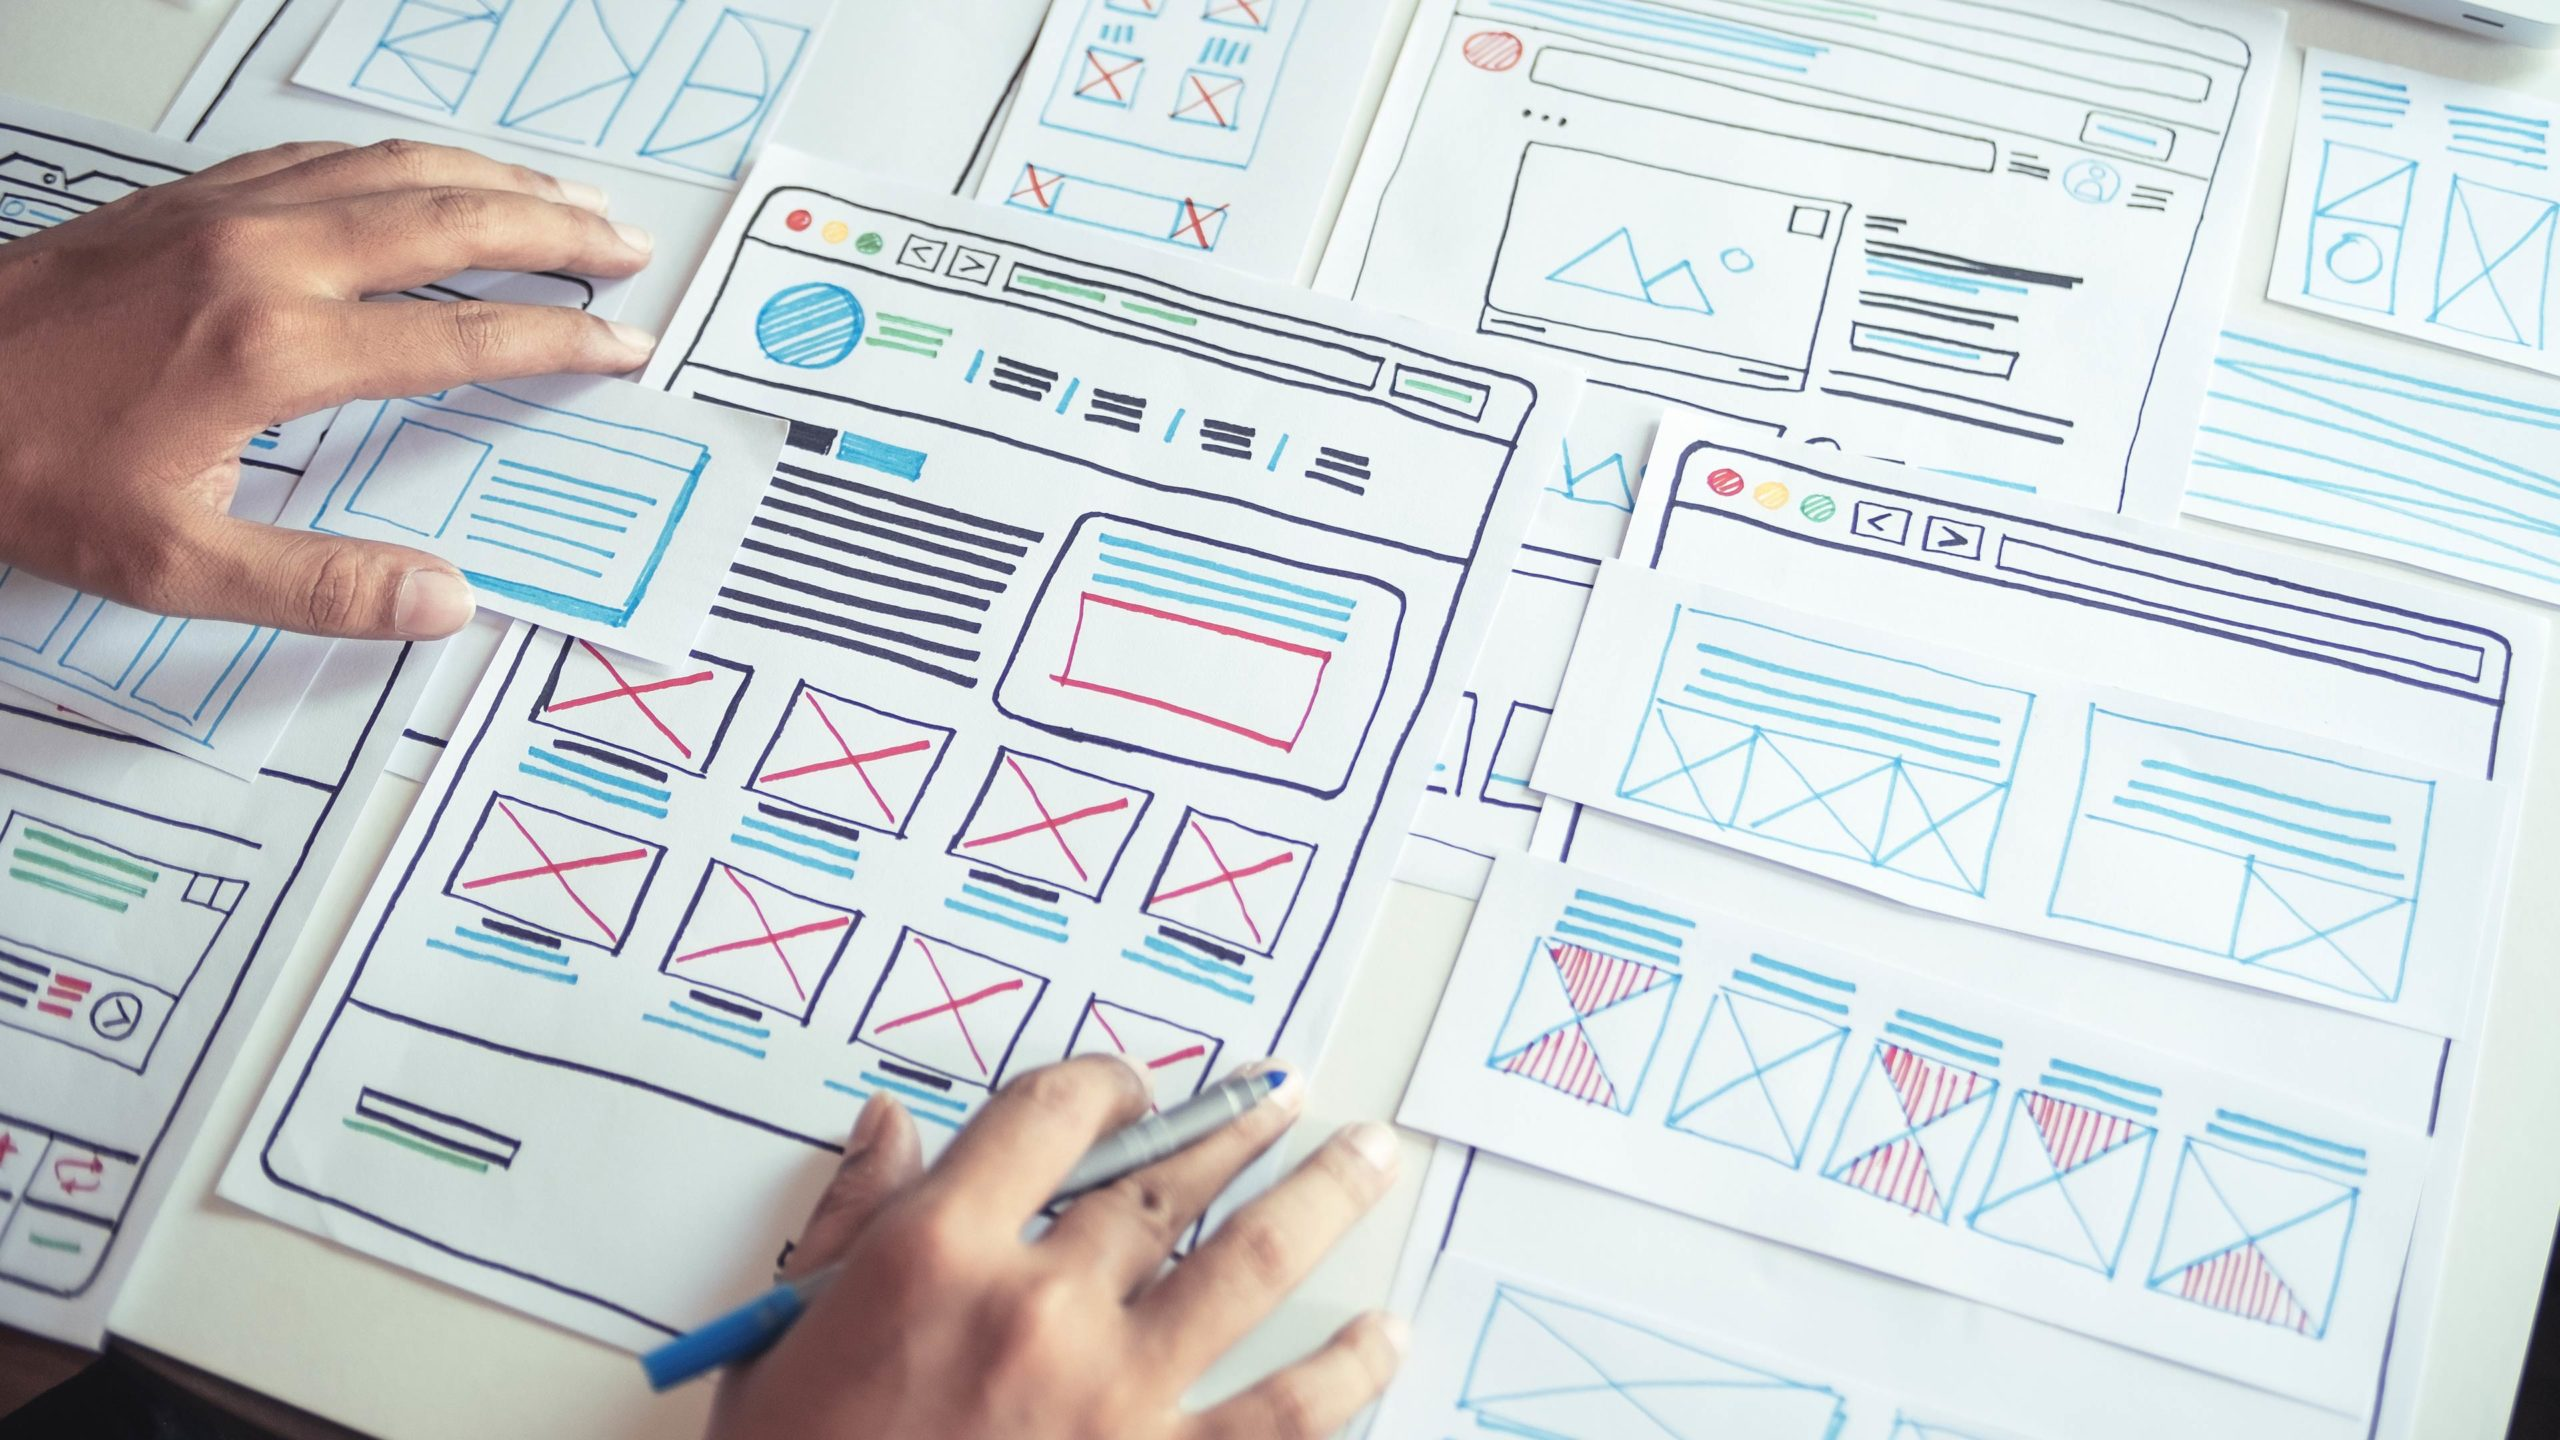 Wireframing and planning a website